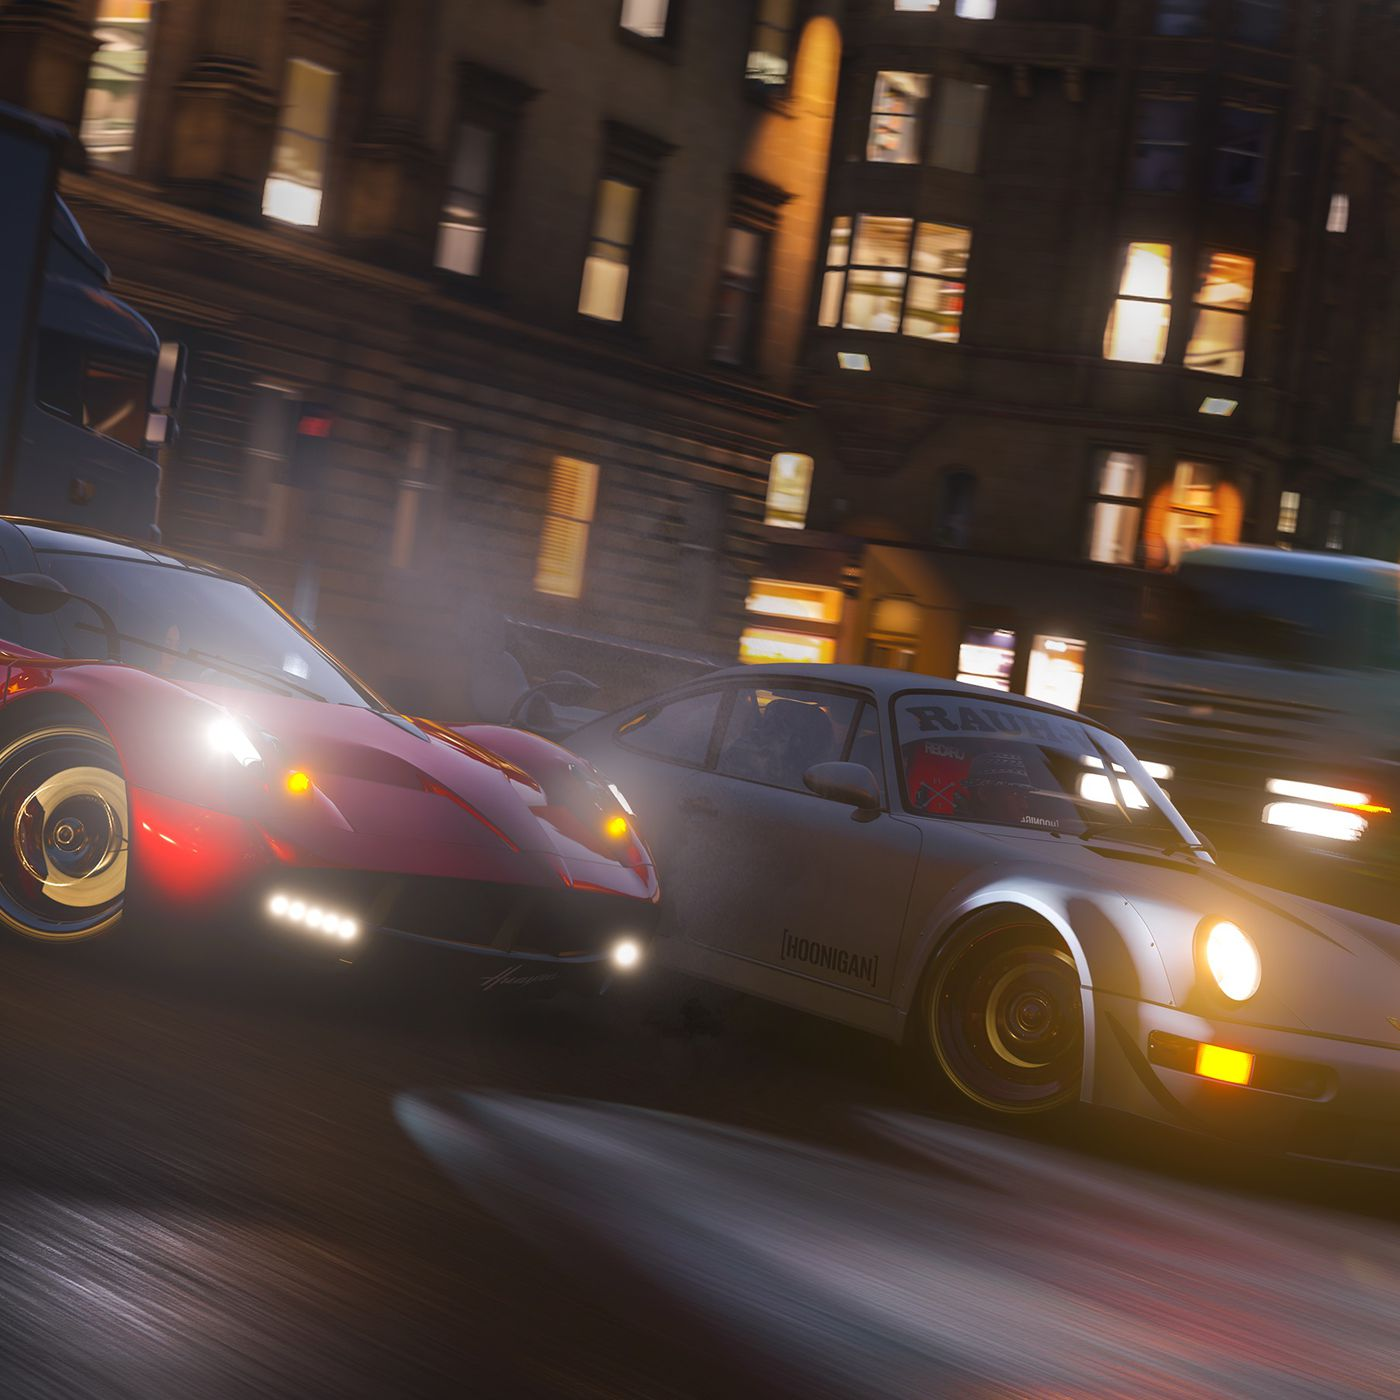 Forza Horizon 4's online play is confusing and confining, but still